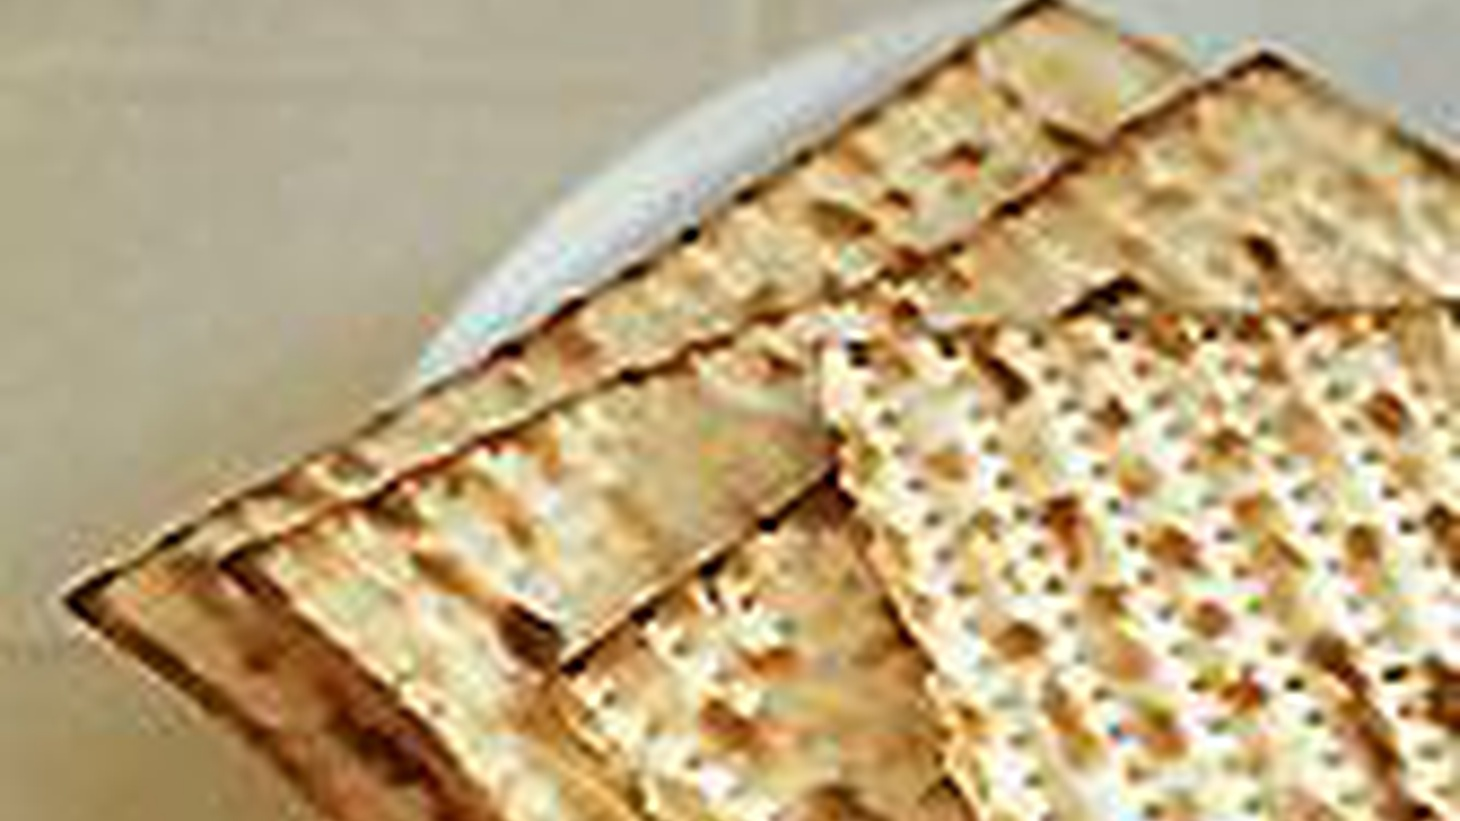 This one-hour special for Passover, which replaces Good Food on this date, explores the Festival of Spring and Freedom.